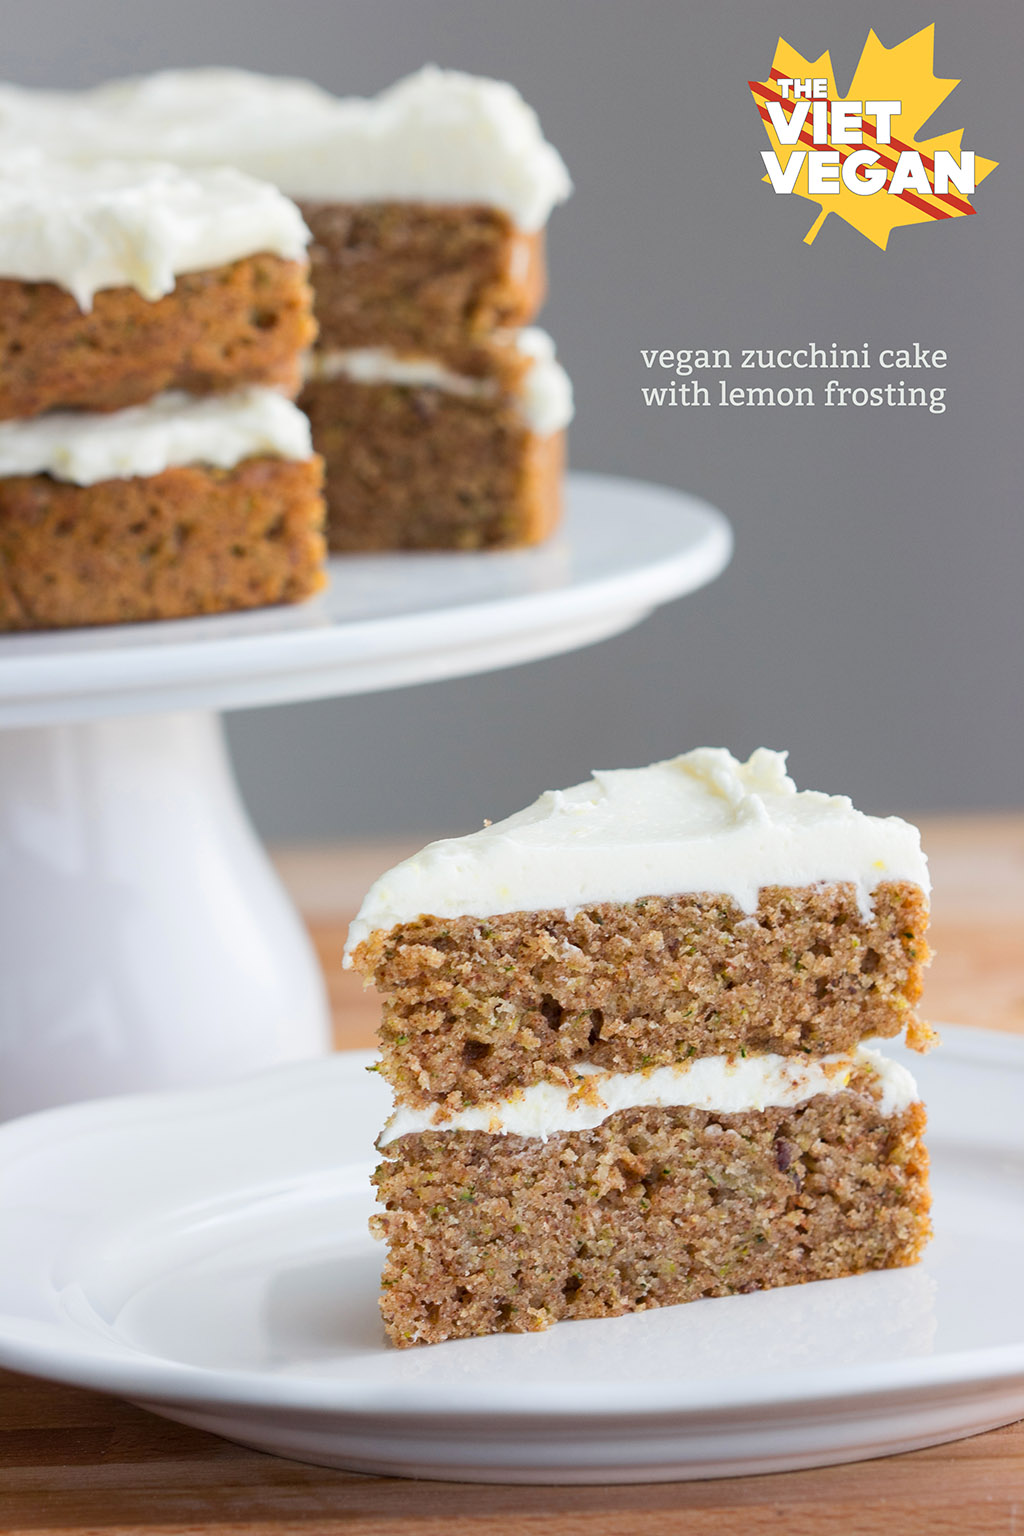 Vegan Zucchini Cake with Lemon Frosting | The Viet Vegan